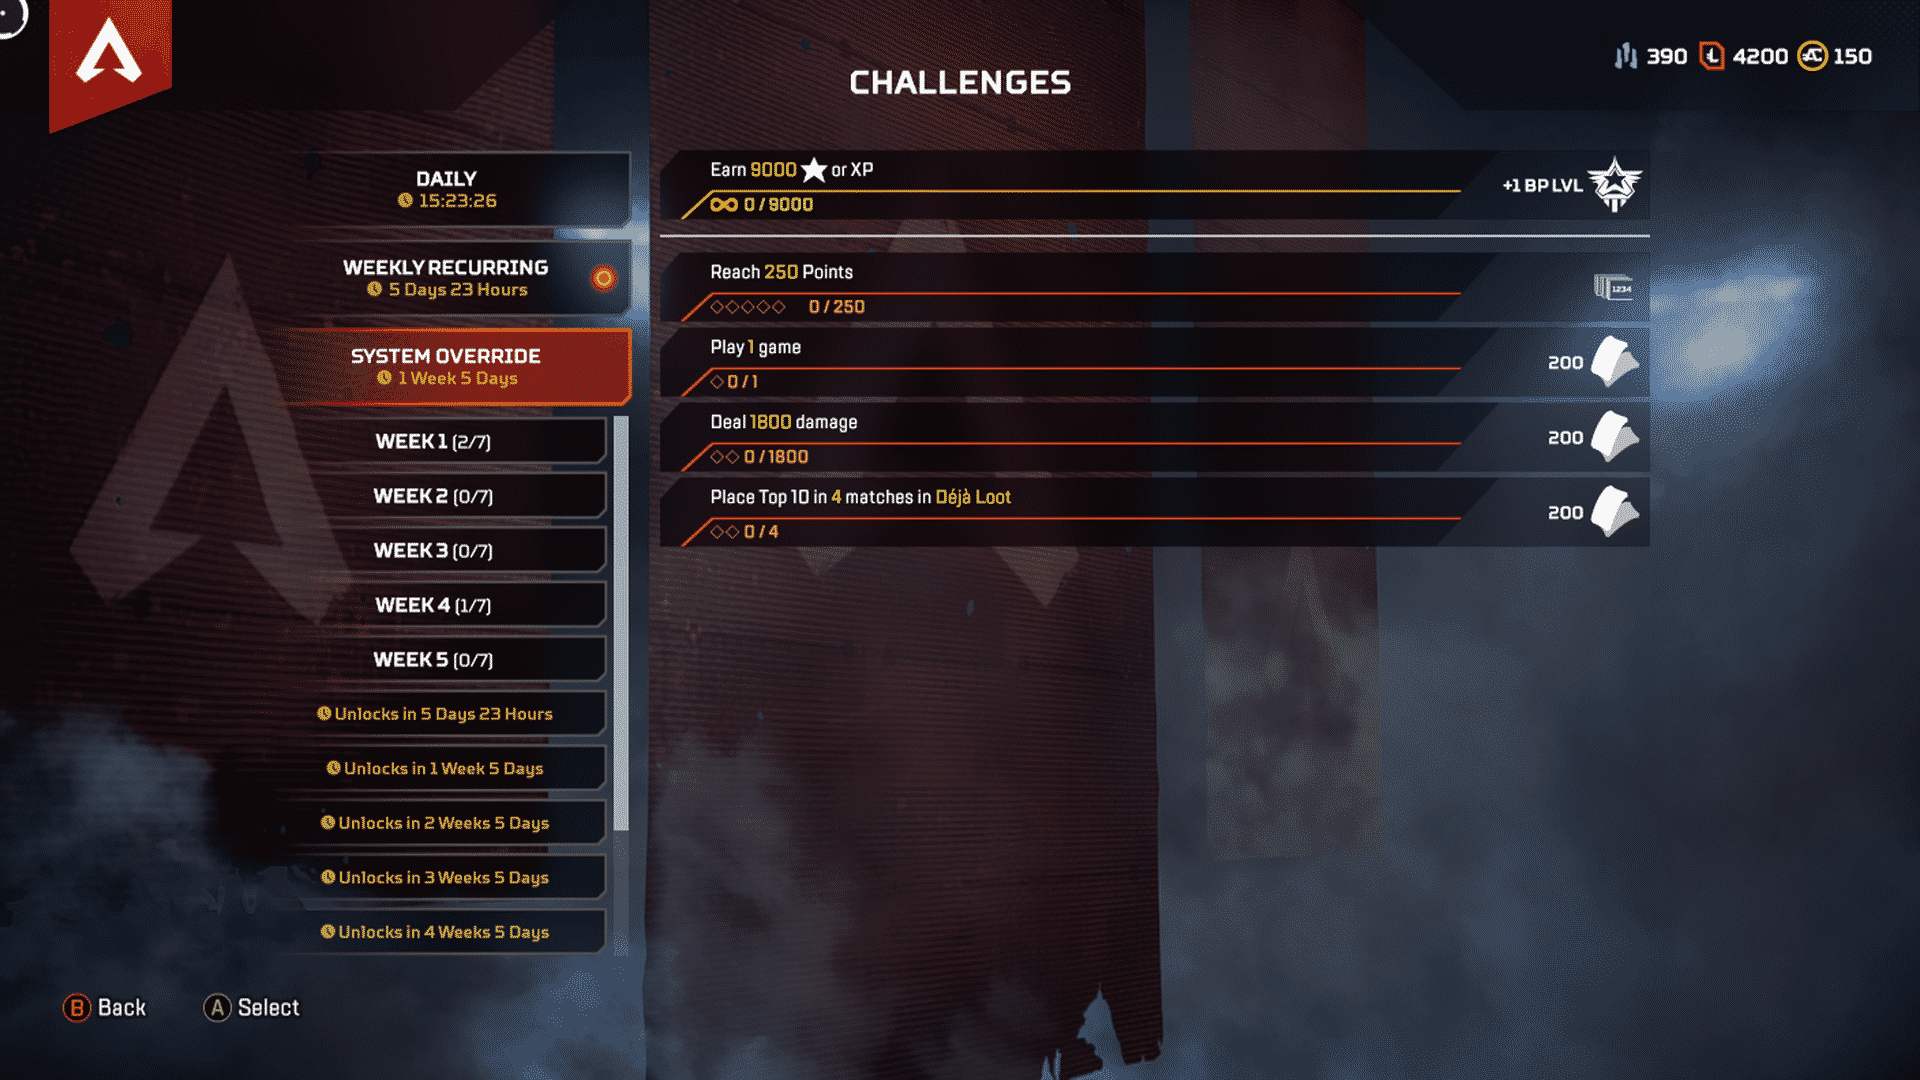 Apex Legends System Override Challenges